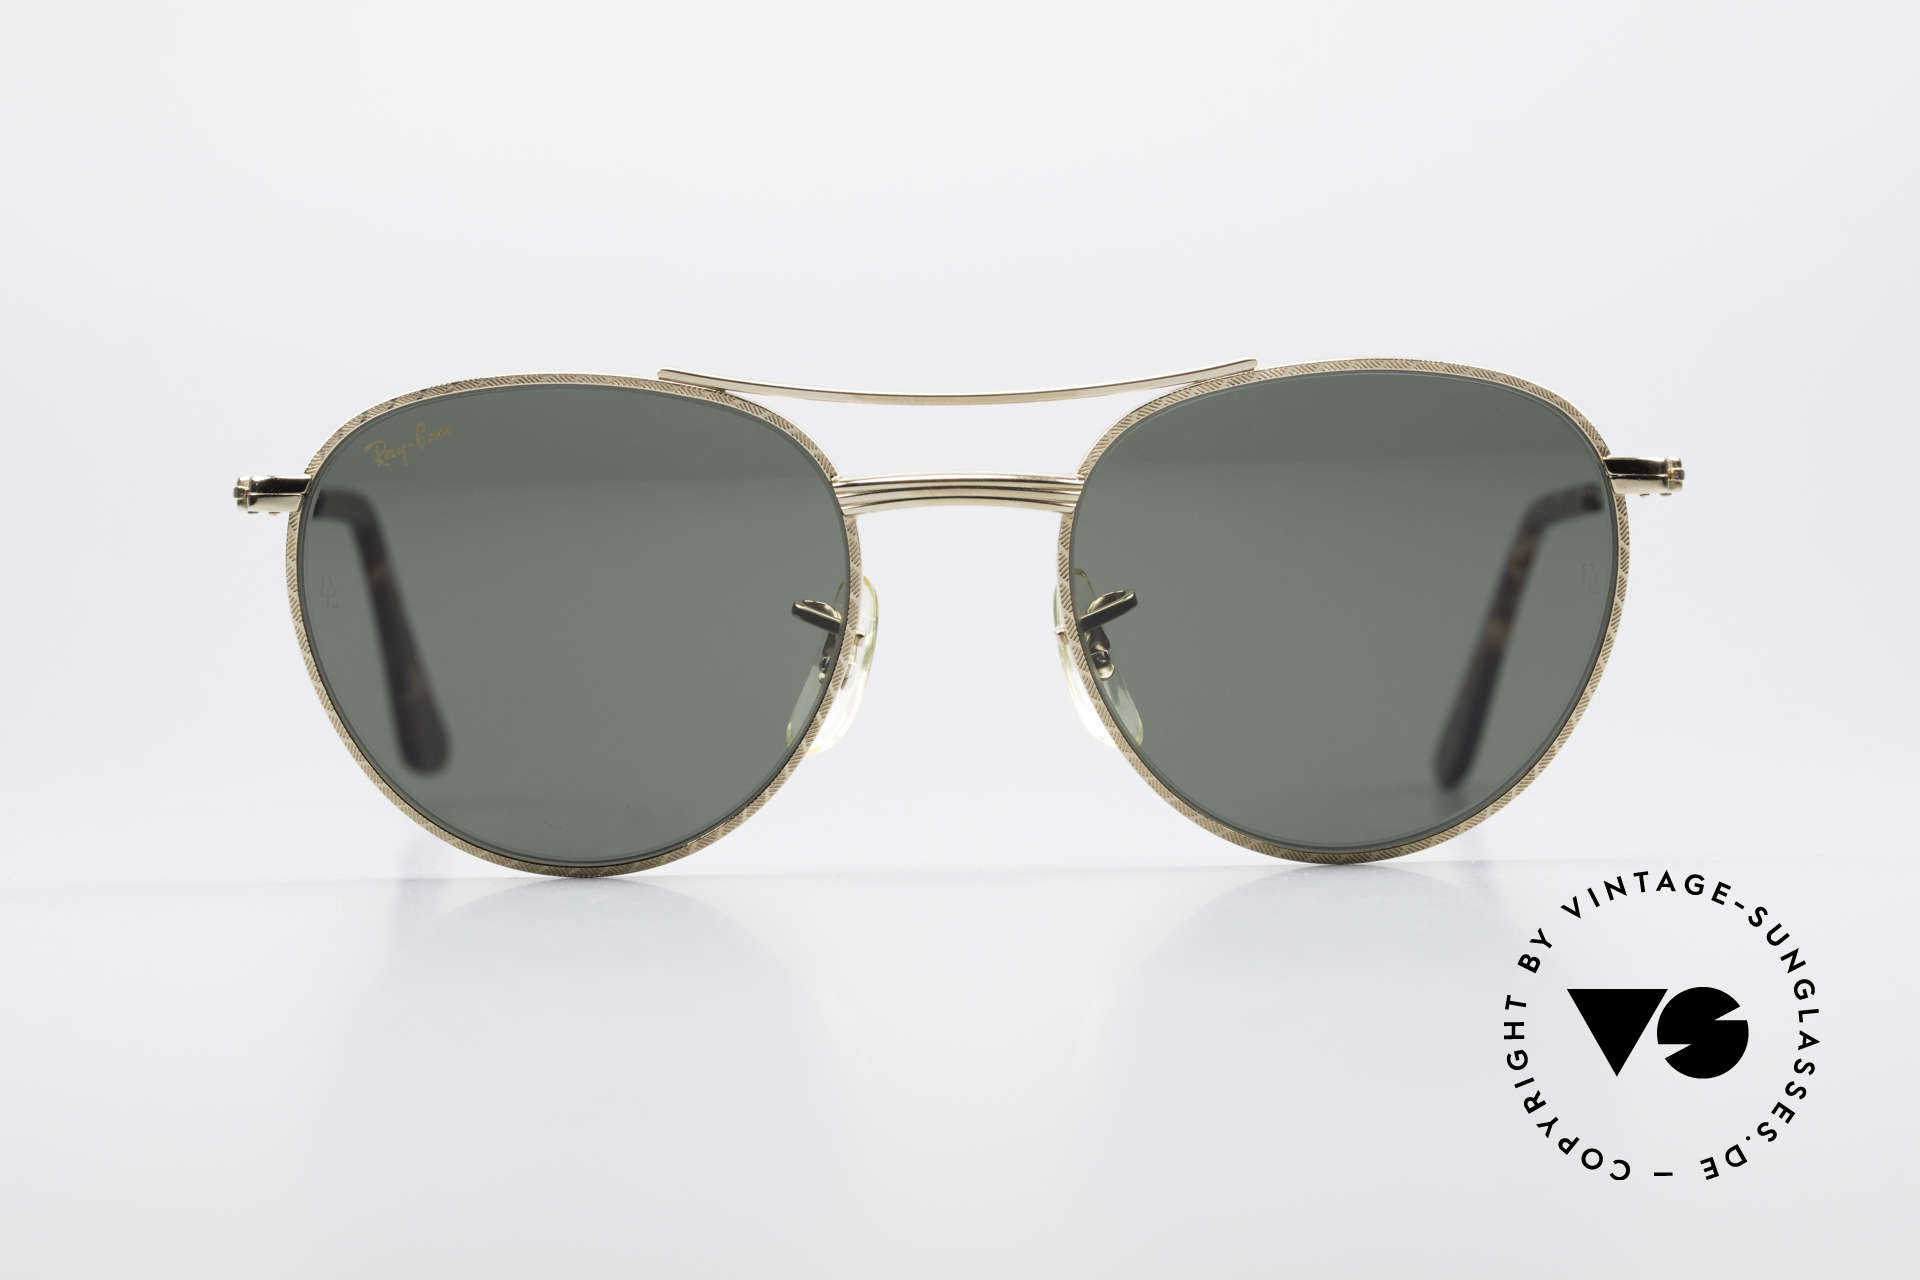 dd69a54b02 Sunglasses Ray Ban 1940 s Retro Round Old Ray-Ban USA Bausch Lomb ...